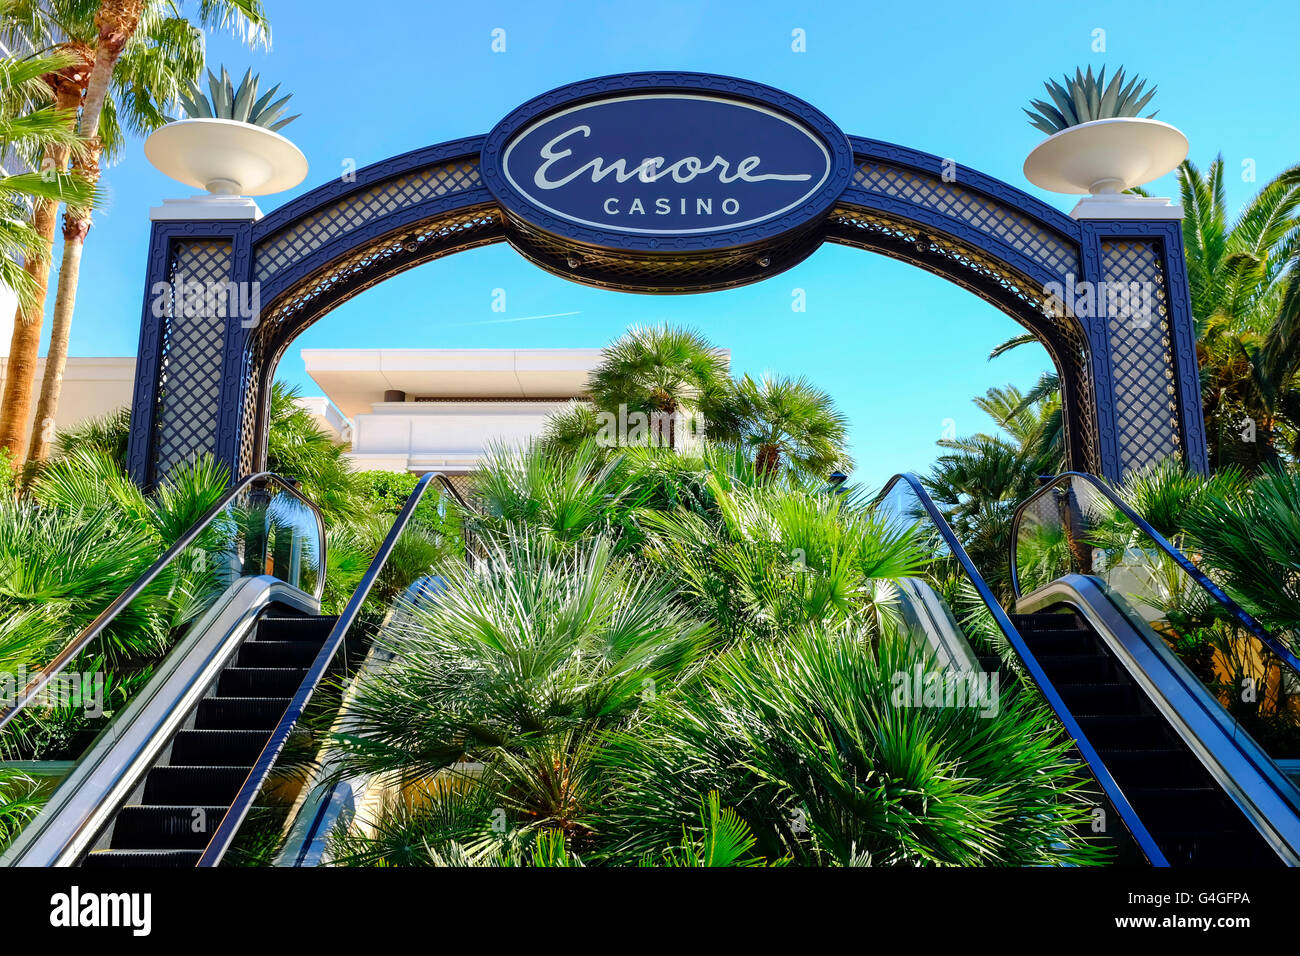 Encore Hotel and Casino in Las Vegas. - Stock Image